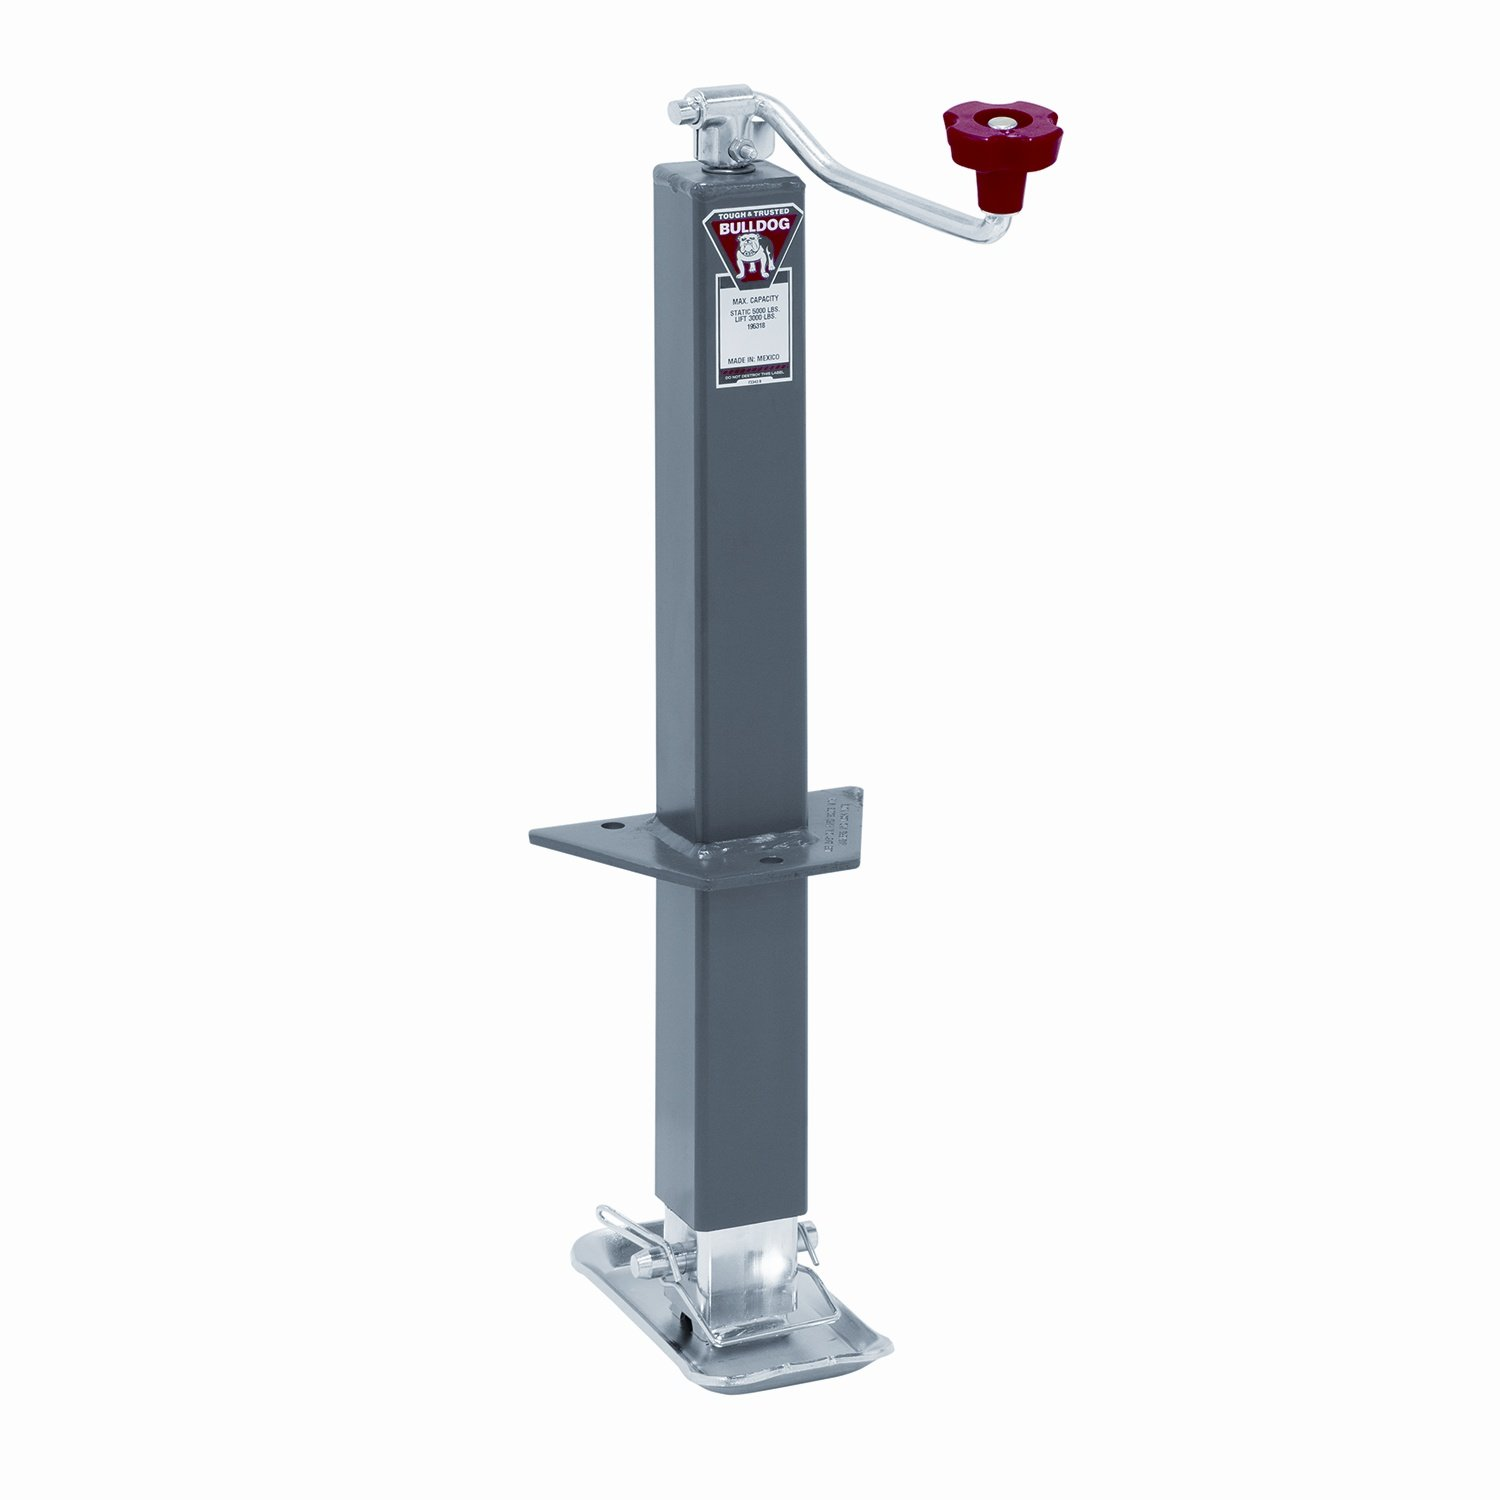 Bulldog 195318 Square Jack, 5000 lb. Load Capacity by Bulldog